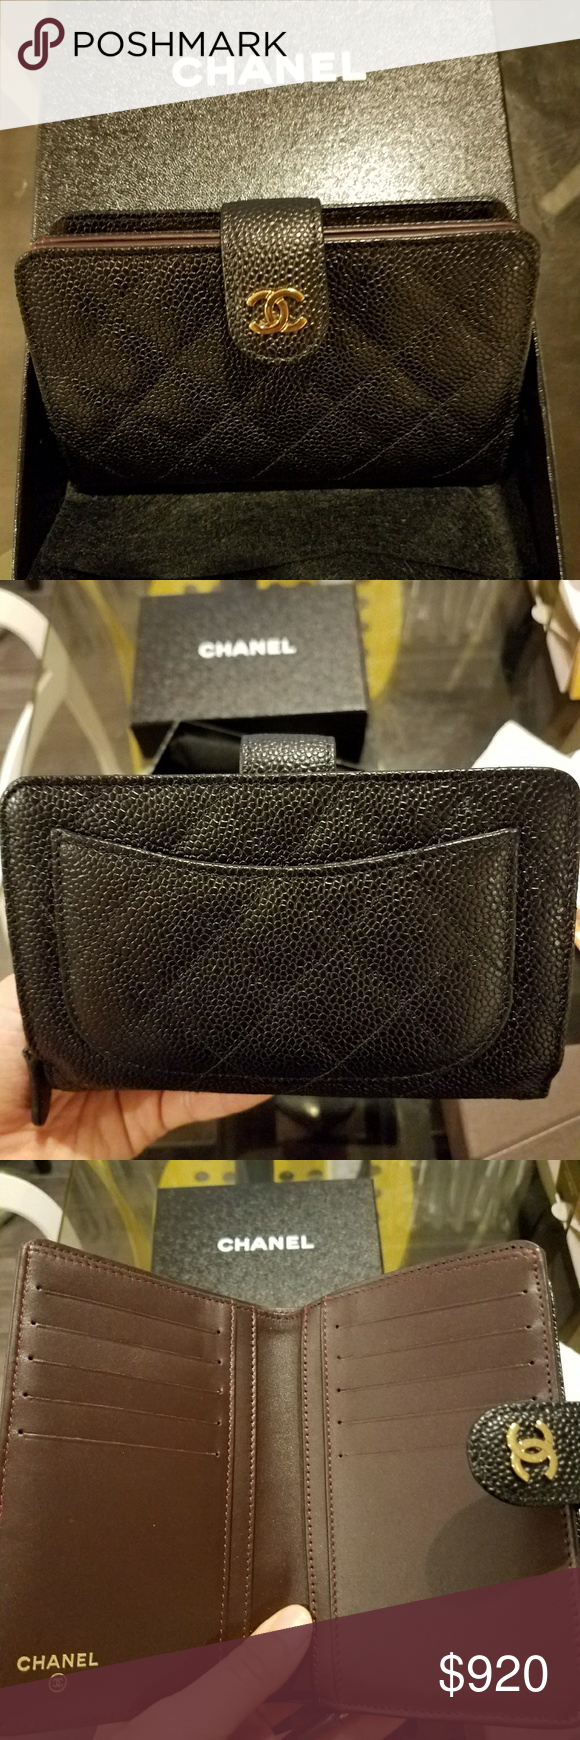 184817f799ce CHANEL Classic Quilted Caviar L-Zip Bifold Wallet 100% Authentic Chanel  black caviar classic